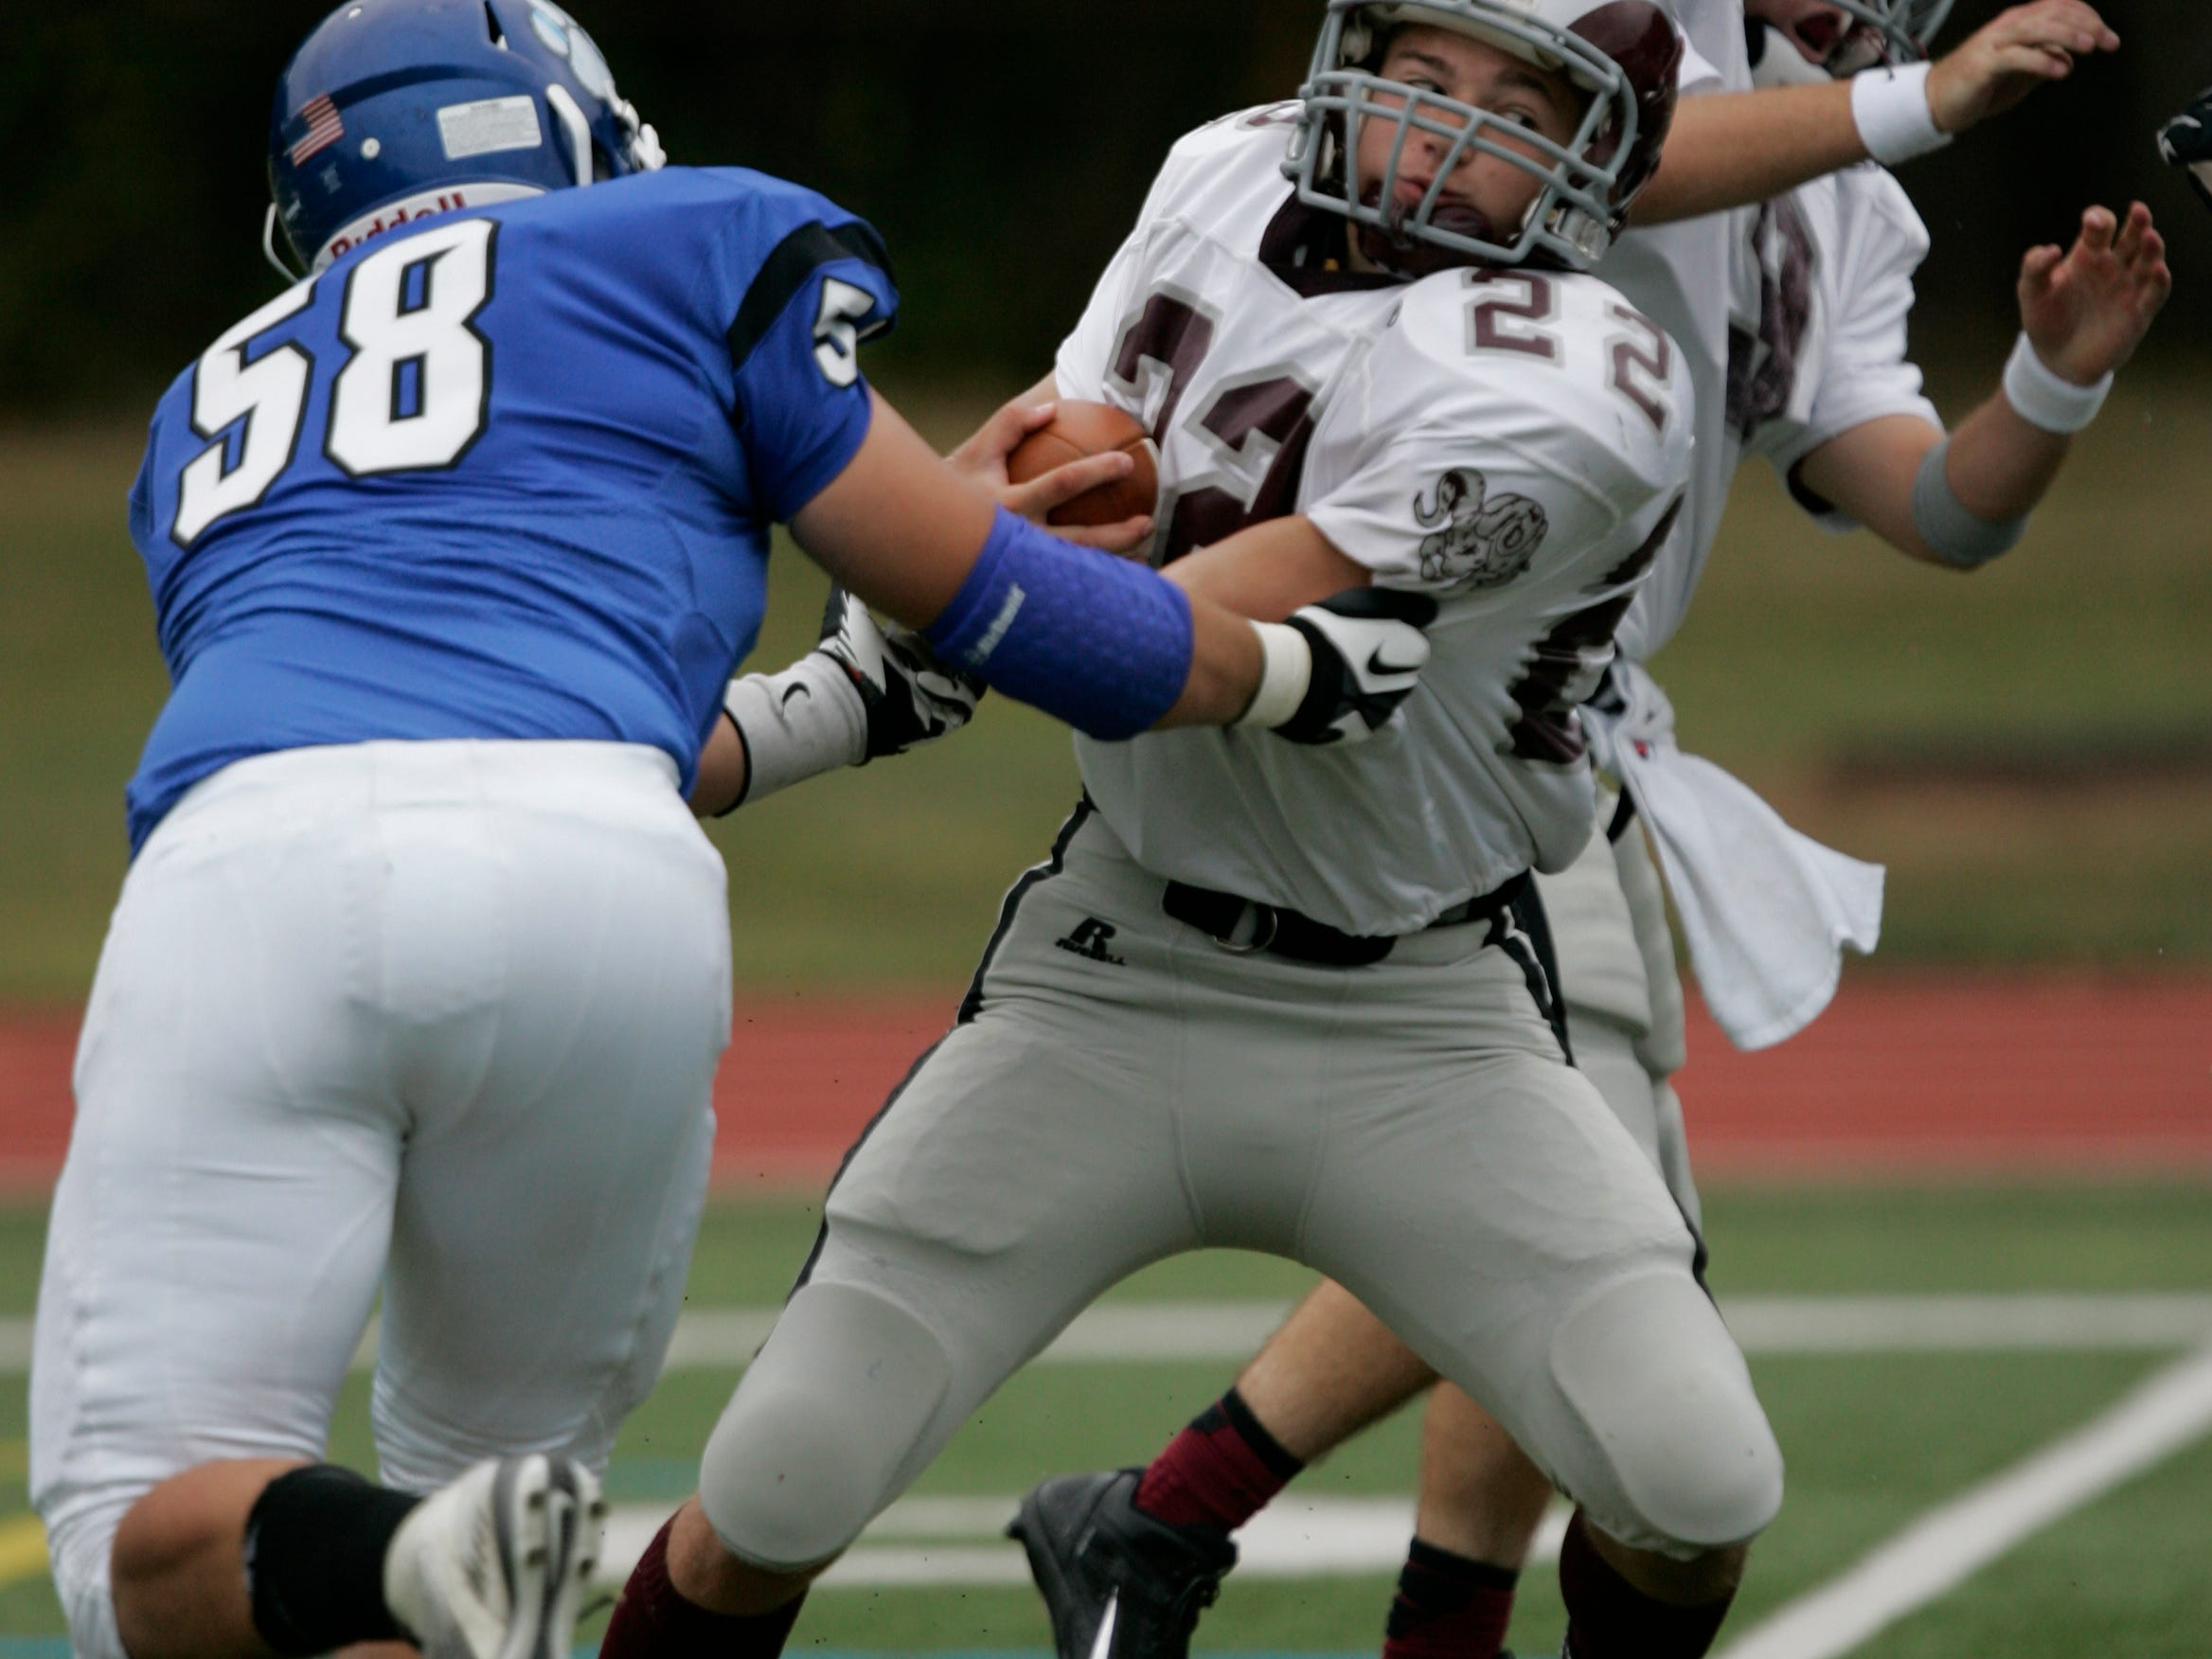 Metuchen high school football player #58 Robby Gilman tries to strip the ball from South River high school player #22 Mario Nigroin the first half against Metuchen high in a game at Metuchen high school Saturday September 13, 2014 photo by Ed Pagliarini EST 0914 FB South River-Metuchen